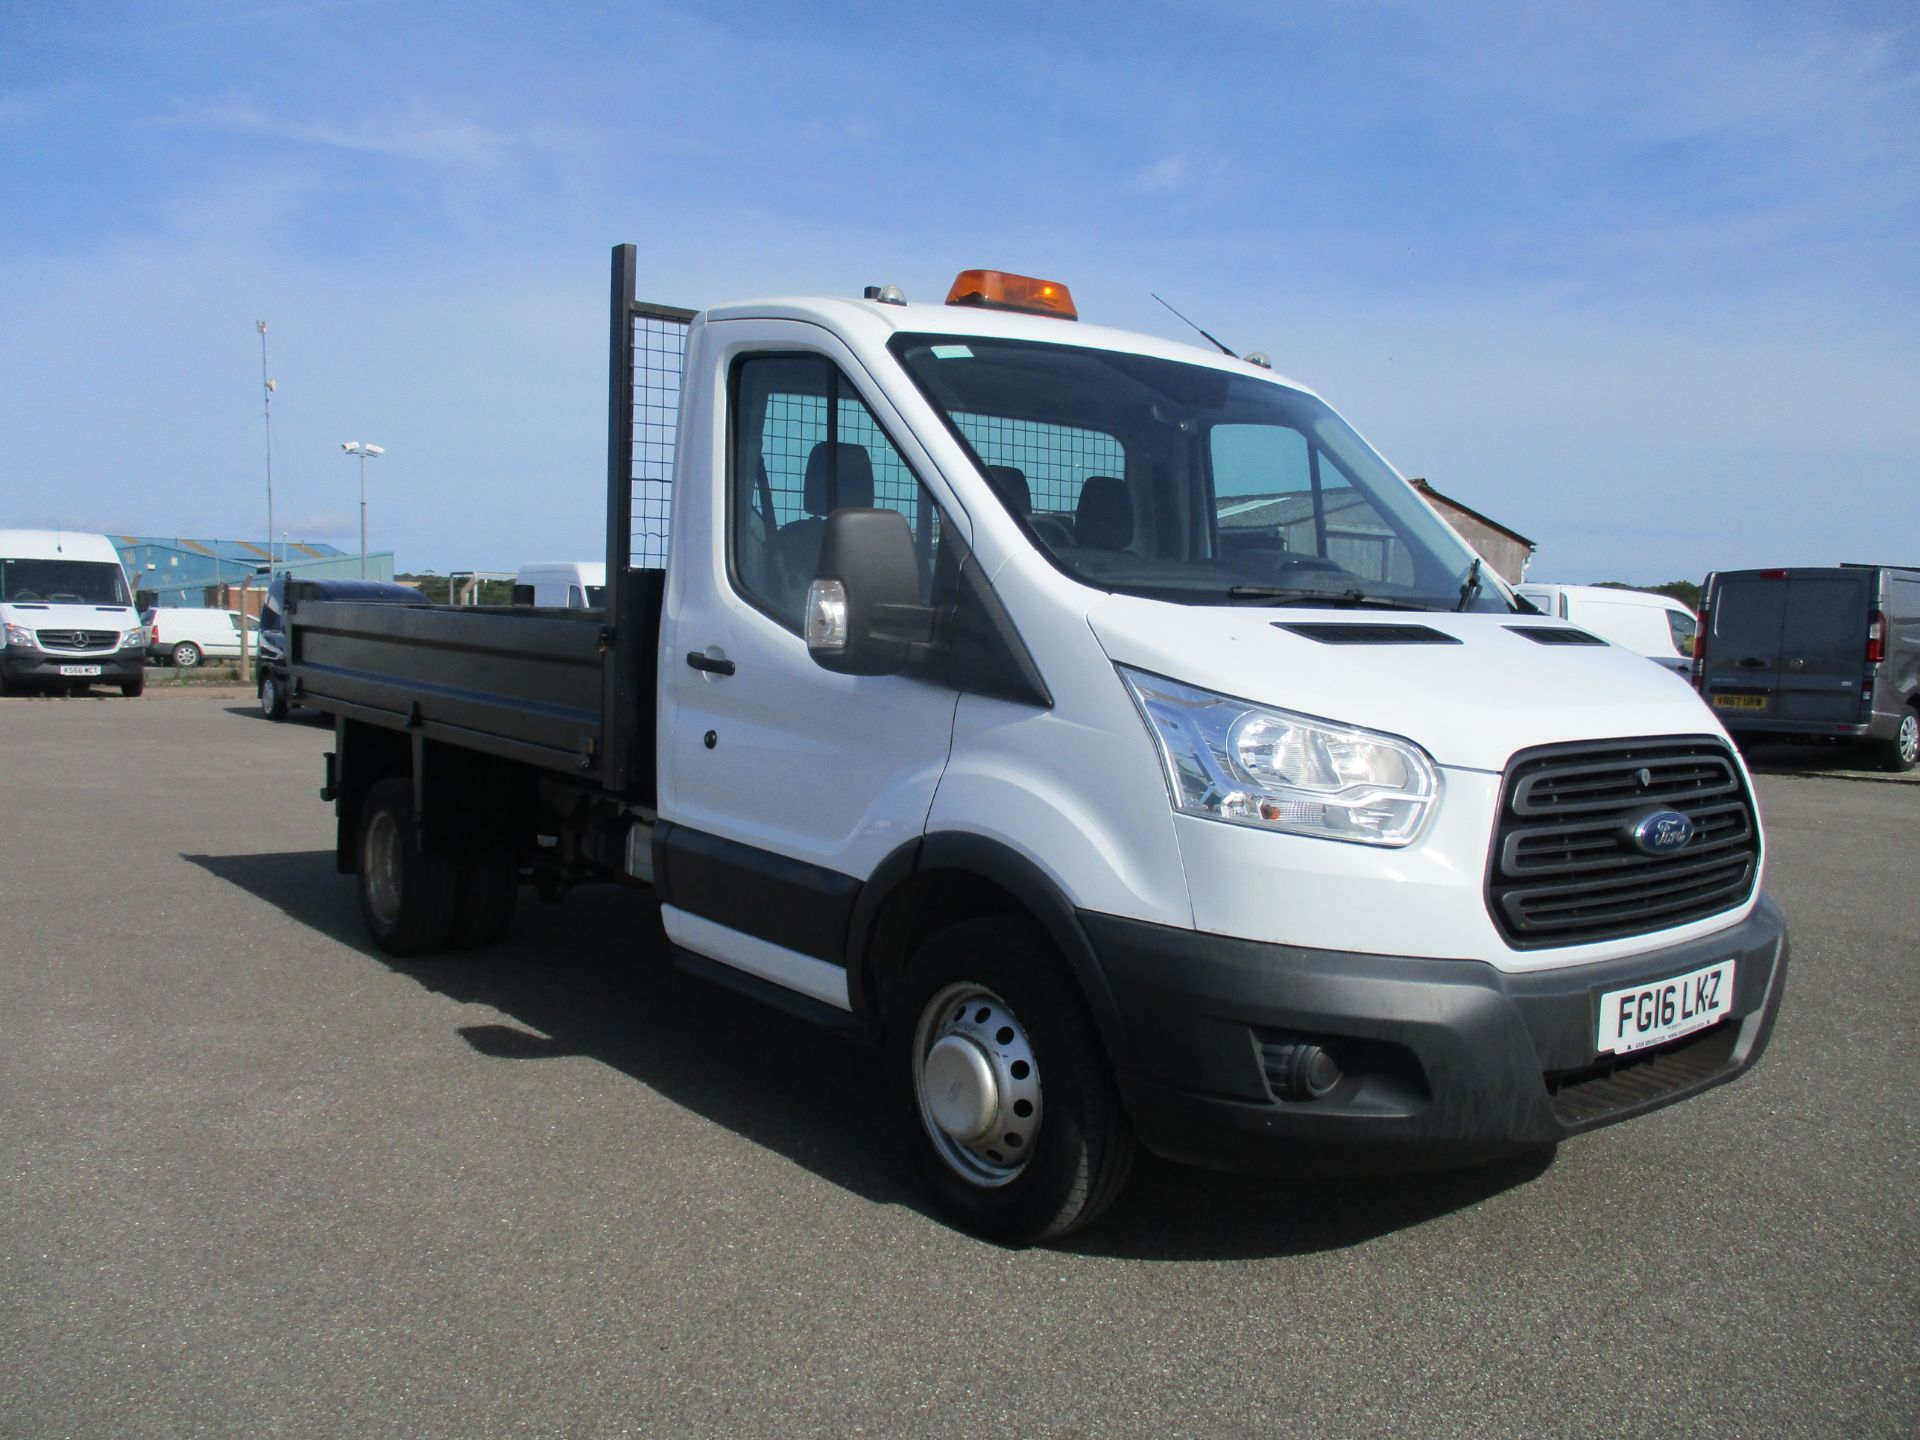 2016 Ford Transit 350 L2 SINGLE CAB TIPPER 125PS EURO 5 (FG16LKZ)